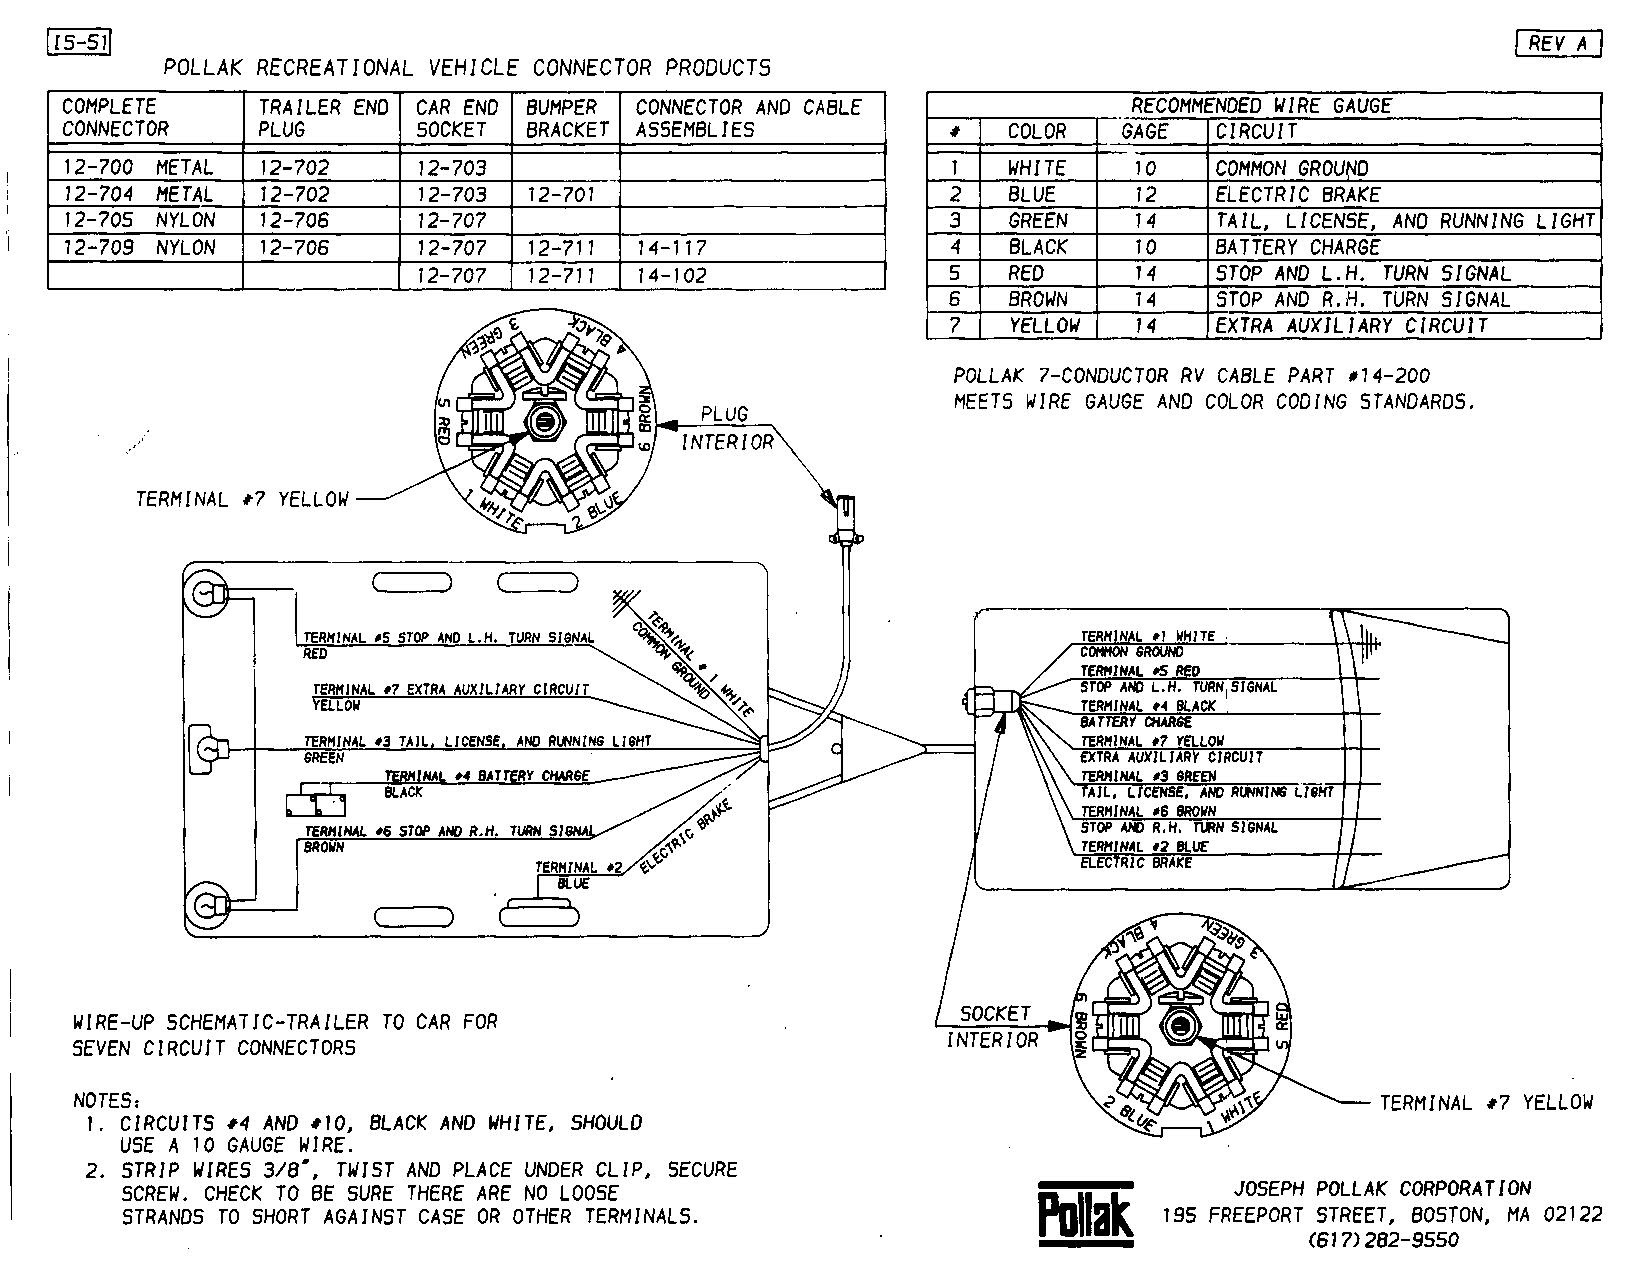 Pollak Trailer Plug Wiring Diagram